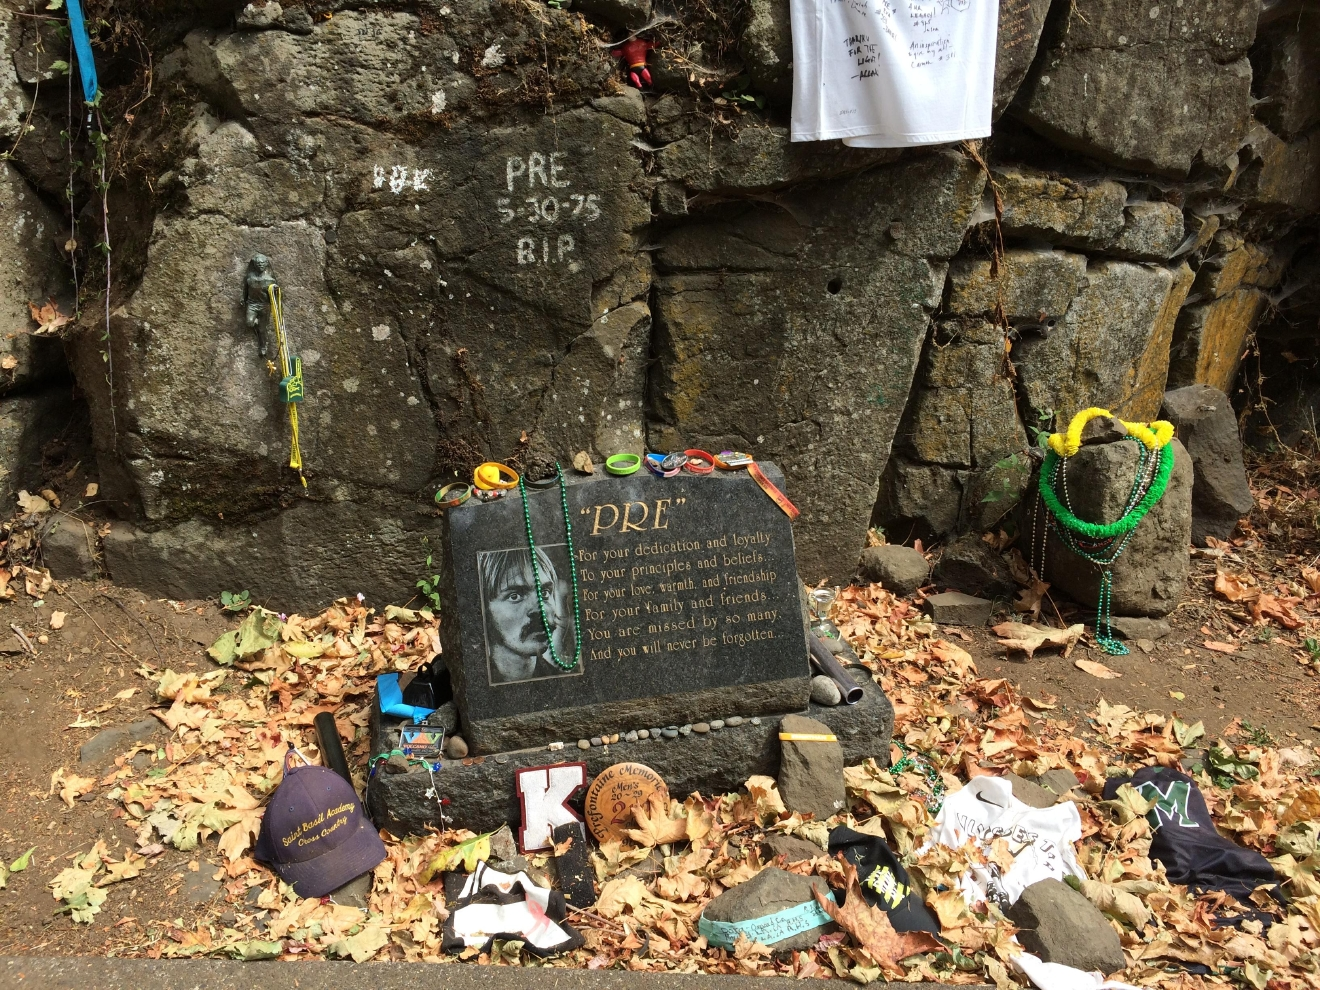 Pre's Rock, the monument to Steve Prefontaine, is also up for landmark status. This area around Pre's Rock is already designated as a city park. City staff hopes to make the area up here safer for pedestrians so it's easier for people to visit. (SBG/Cameron Walker)